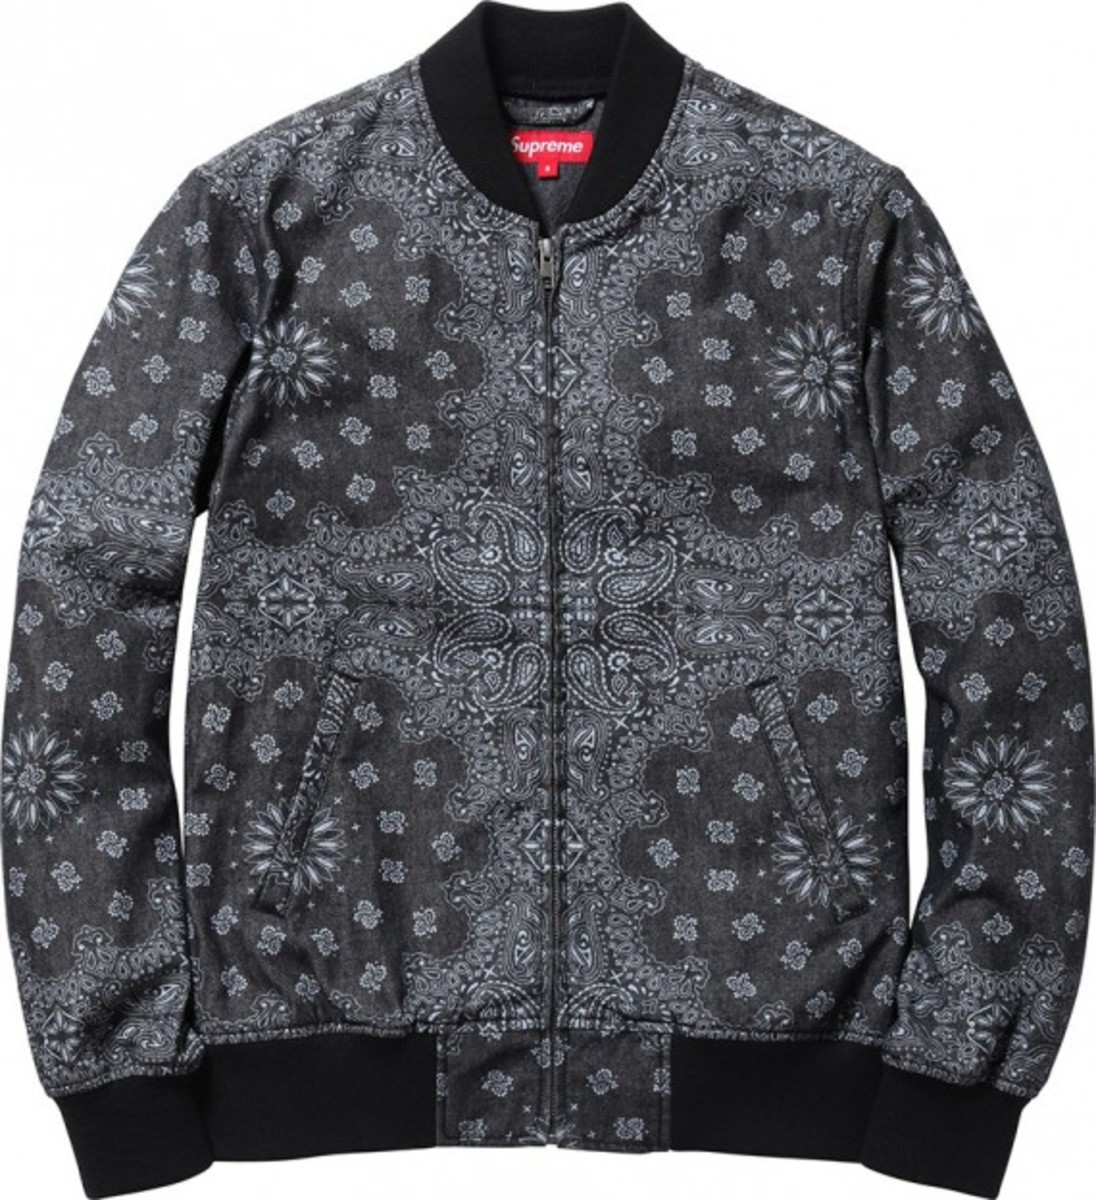 supreme-spring-summer-2013-outerwear-collection-54